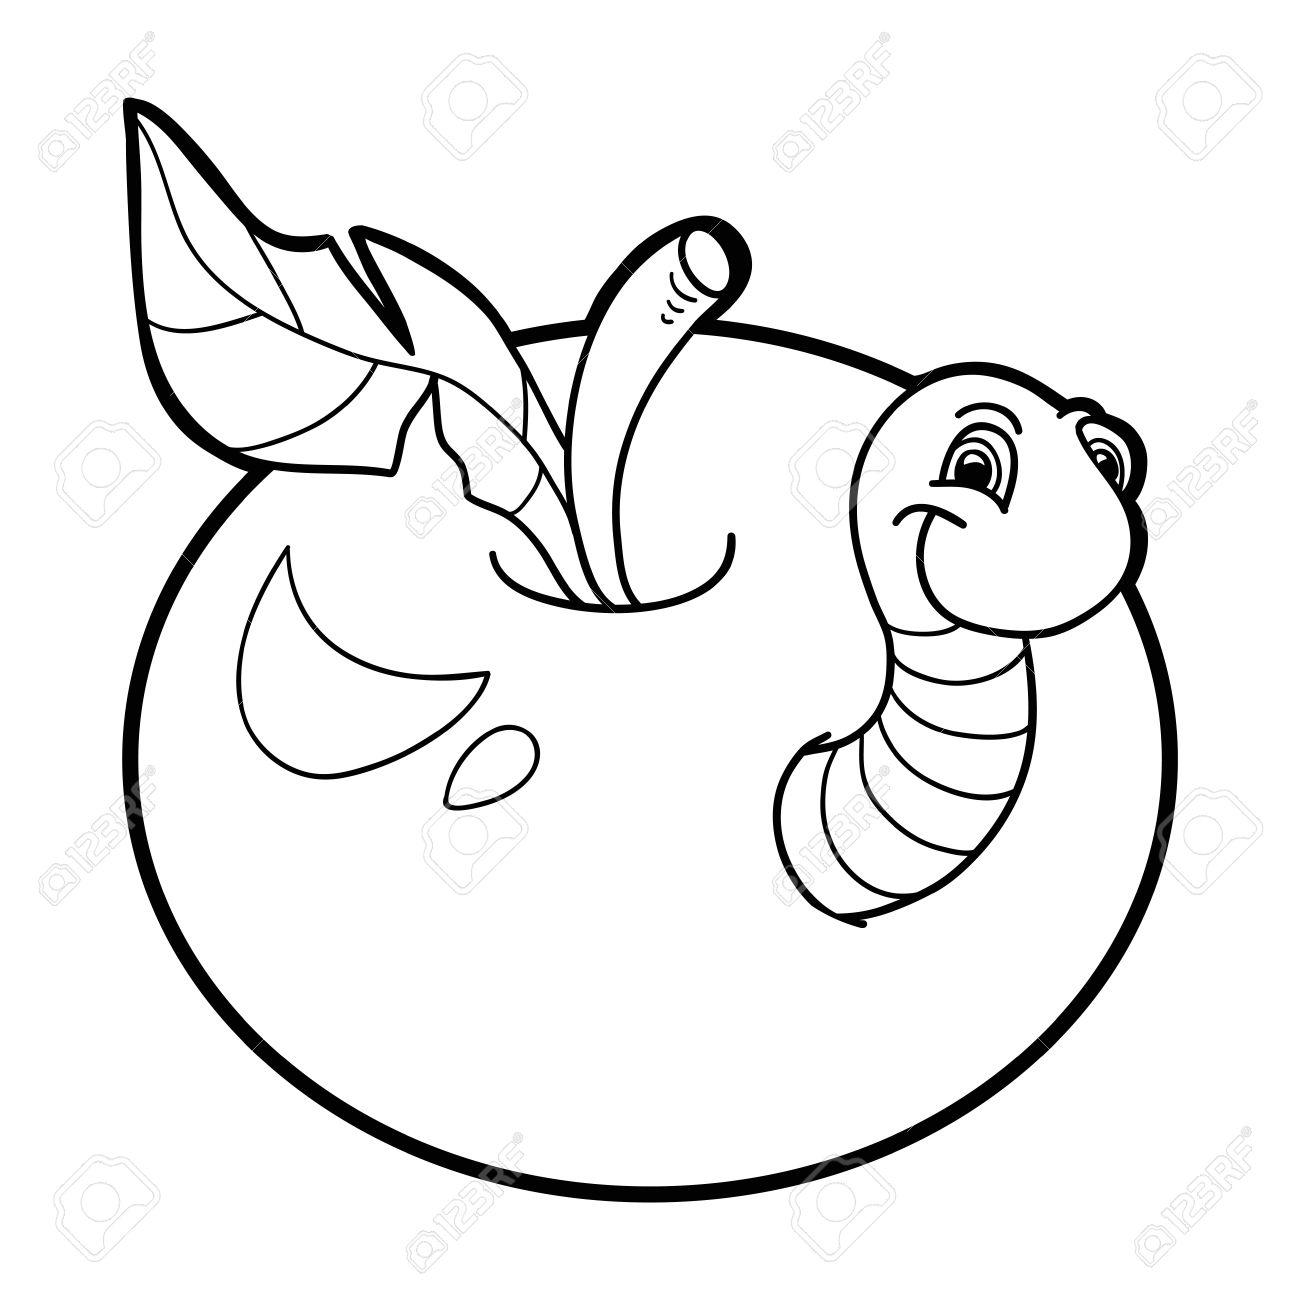 Coloring Book Worm And Apple Stock Vector